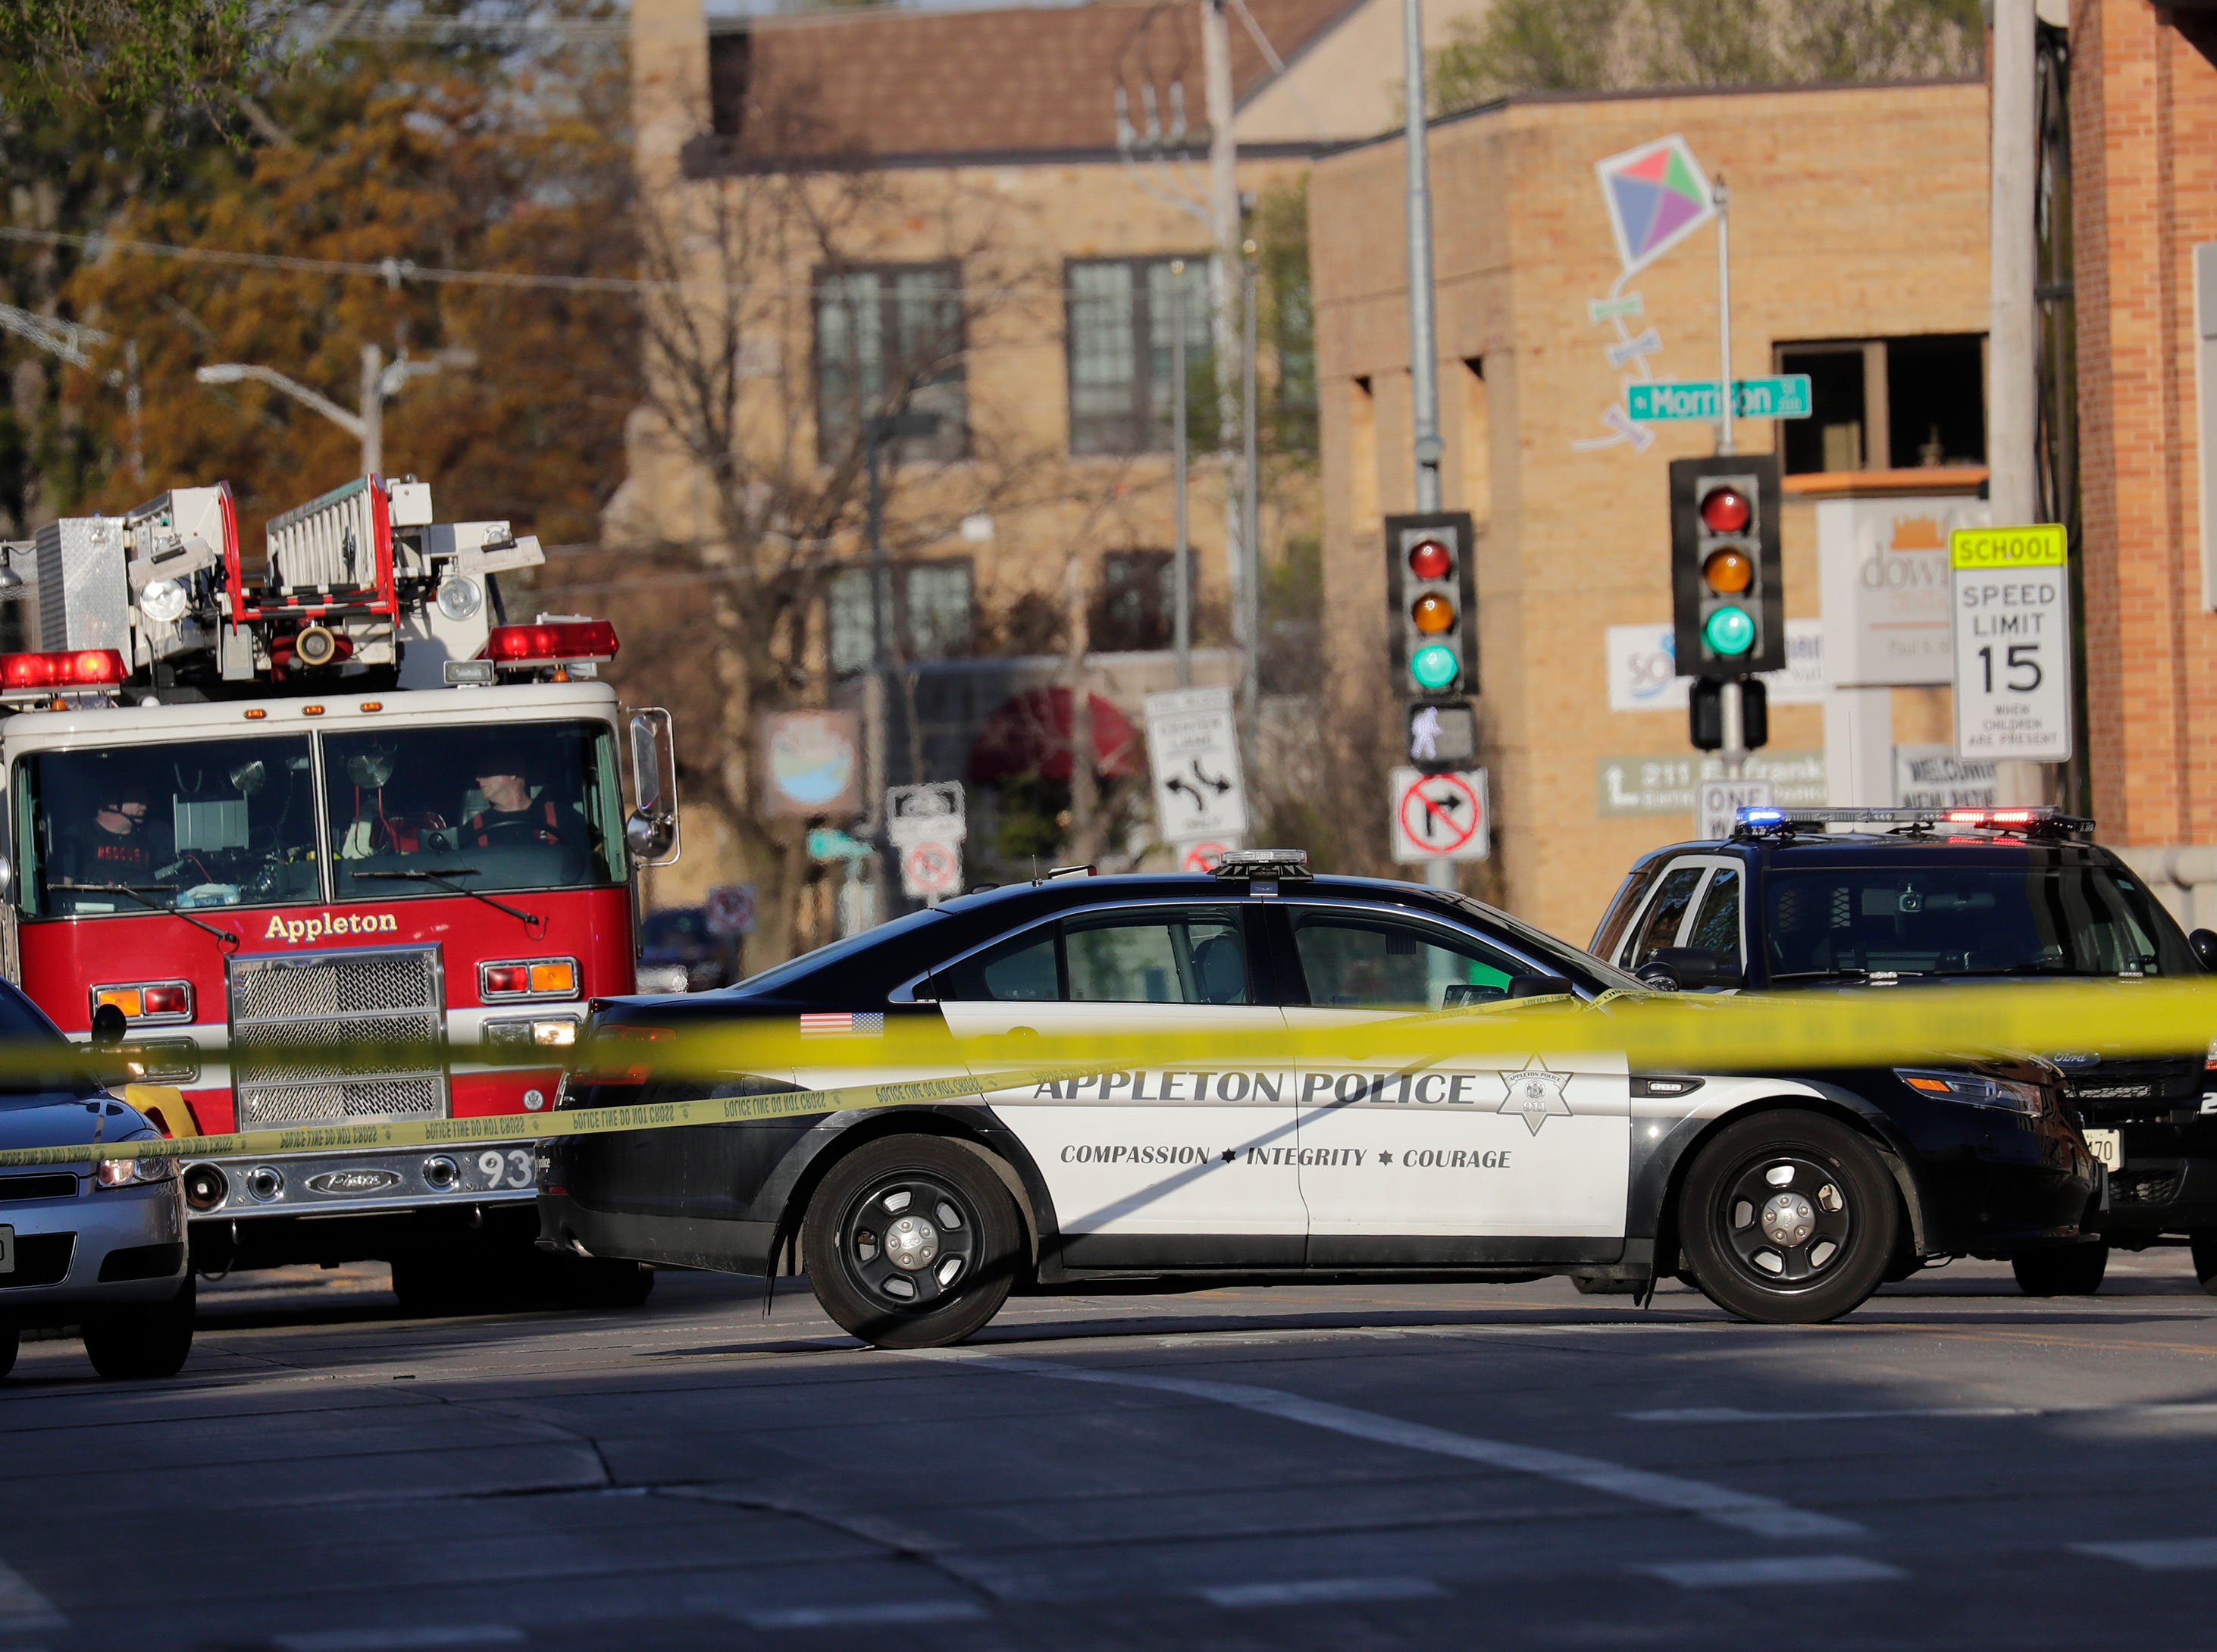 """Authorities investigate a shooting at the Valley Transit Center Wednesday, May 15, 2019, in Appleton, Wis. Paramedics took """"several"""" people to the hospital after a shooting, authorities said. Among the people injured is a police officer and a firefighter, Appleton Police spokeswoman Meghan Cash said."""